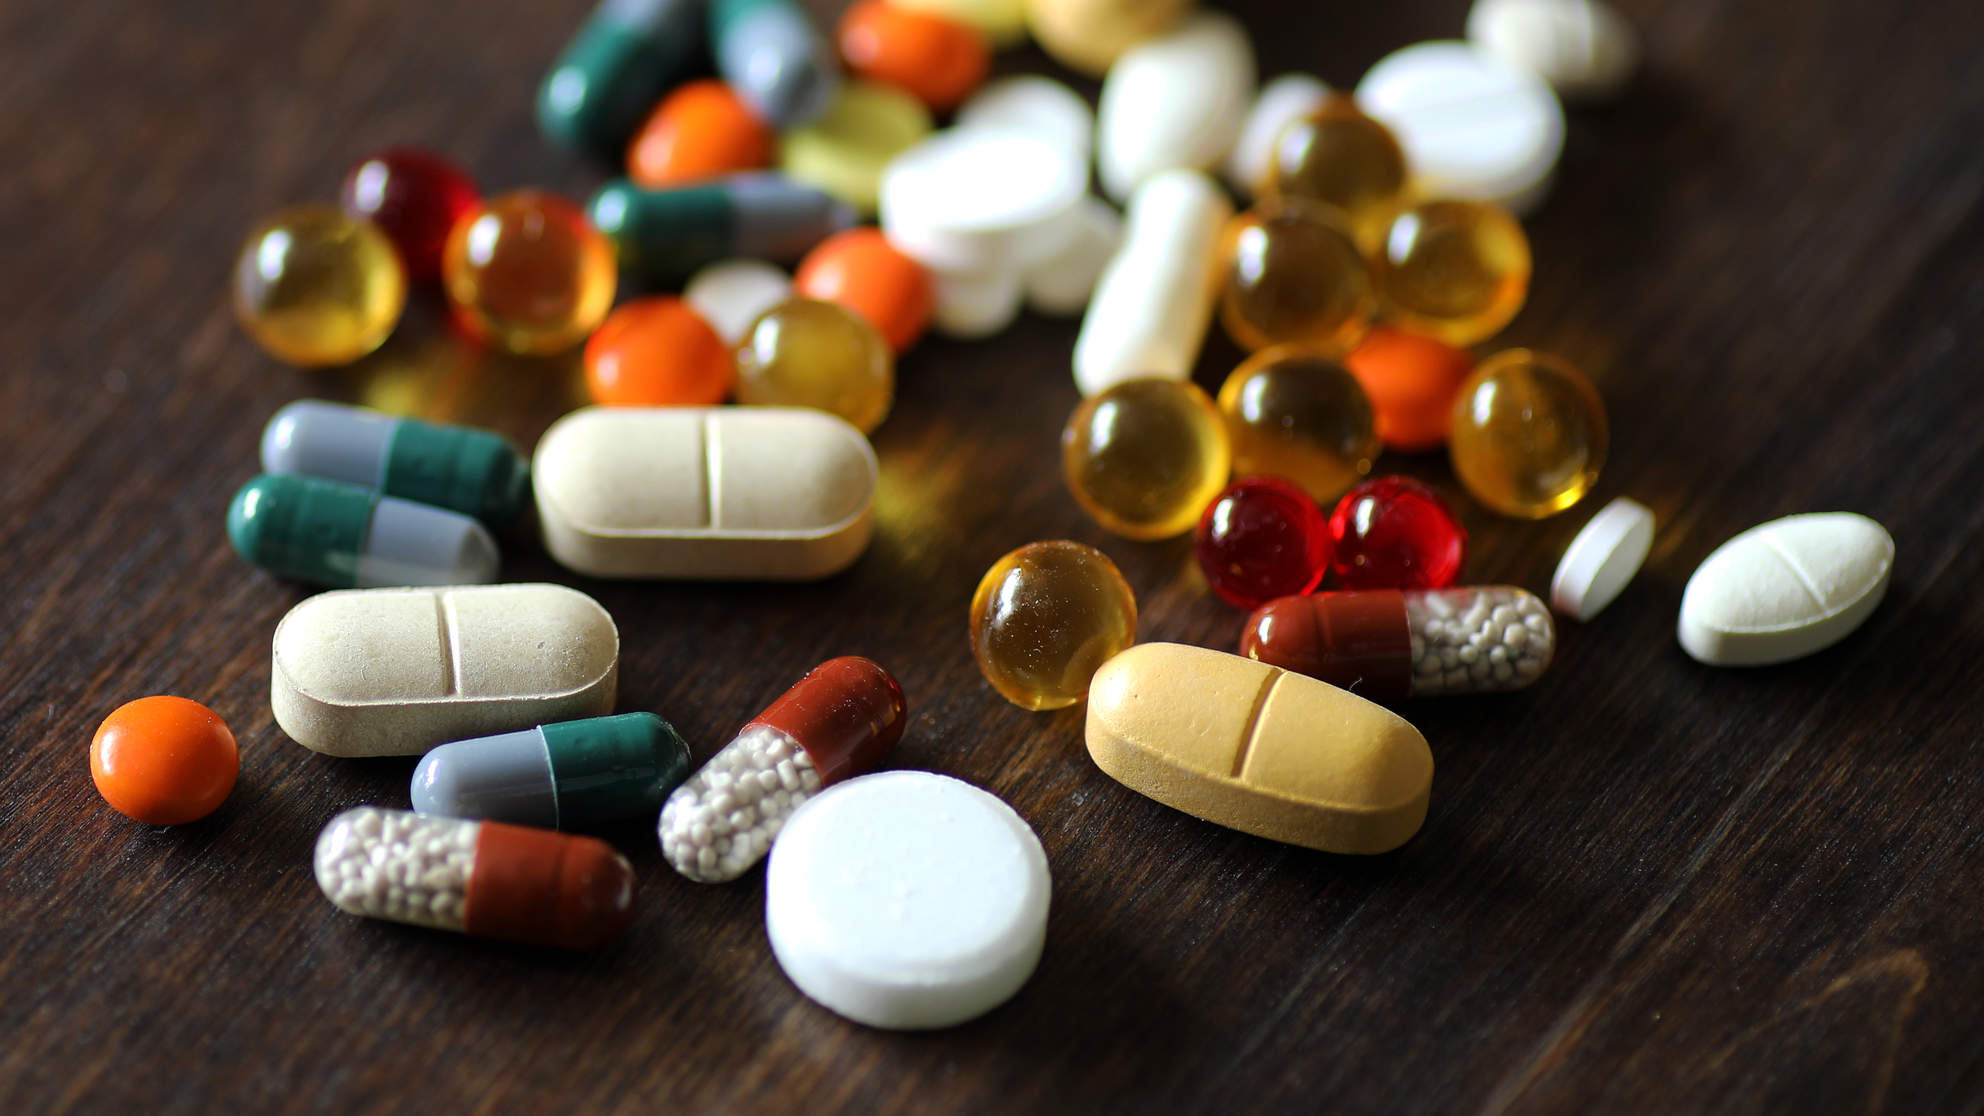 Medications and tablets on a wooden texture table